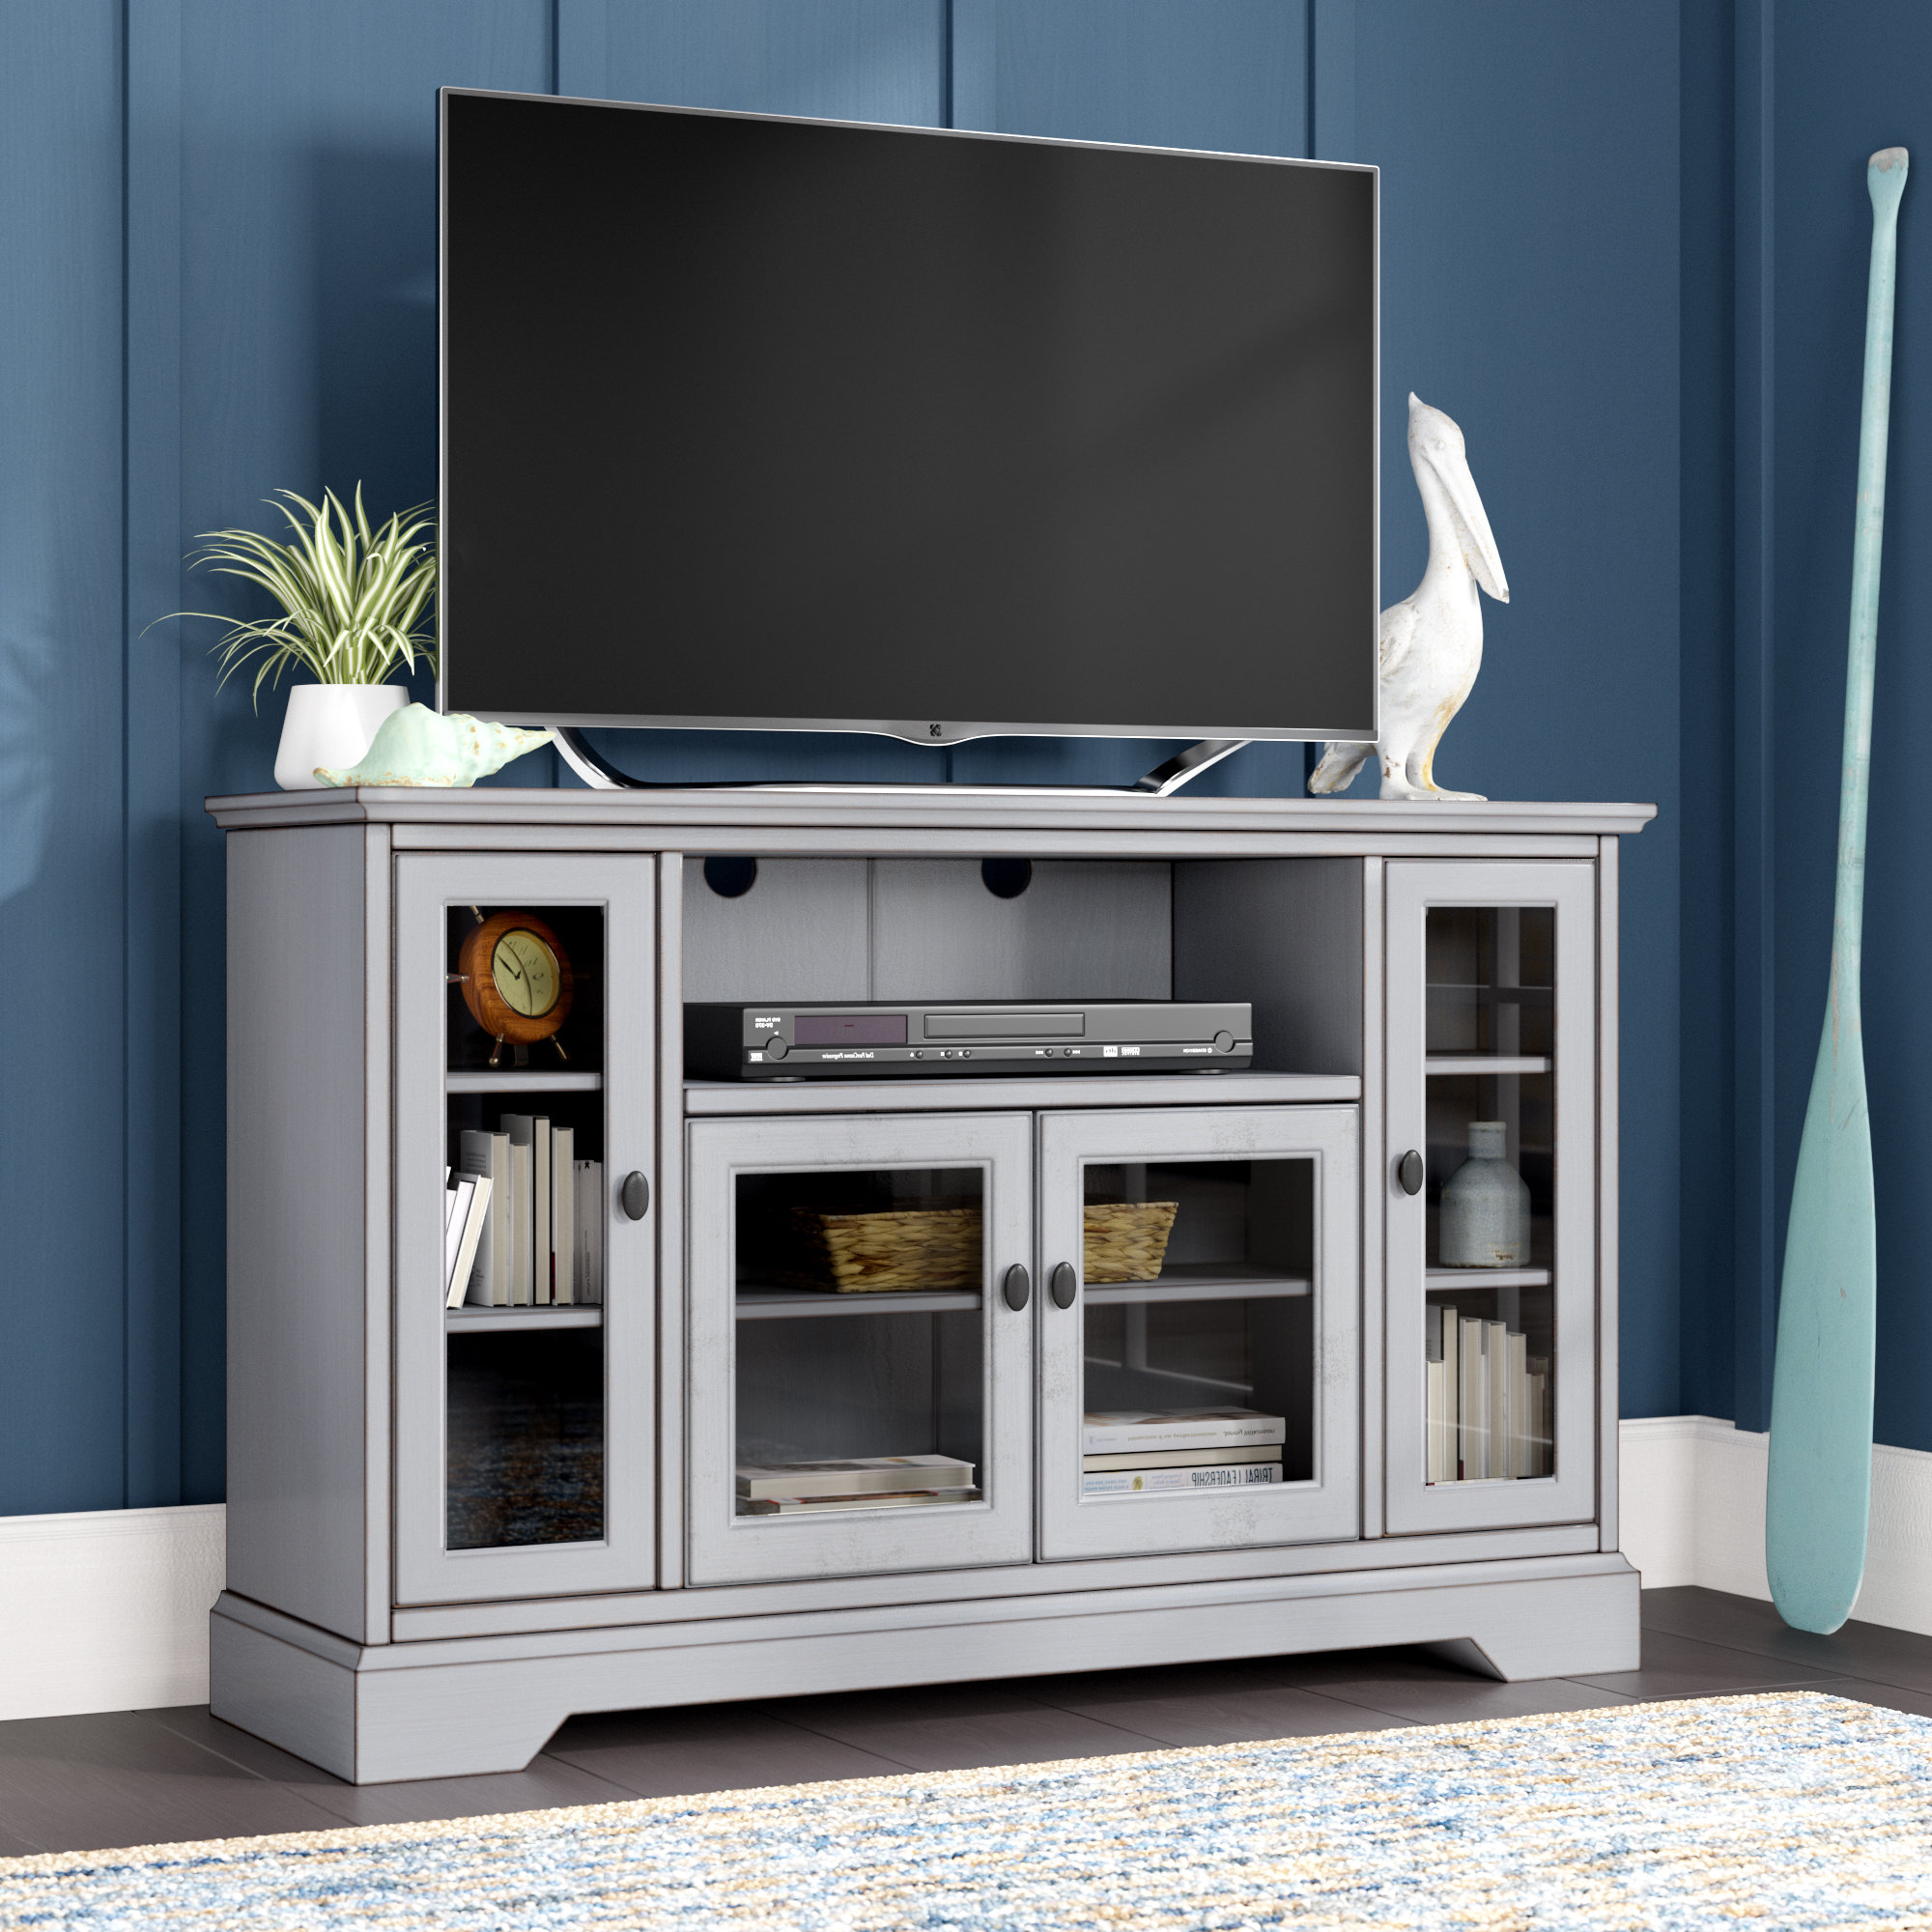 72 Inch Tv Stand | Wayfair For Kenzie 60 Inch Open Display Tv Stands (View 12 of 20)